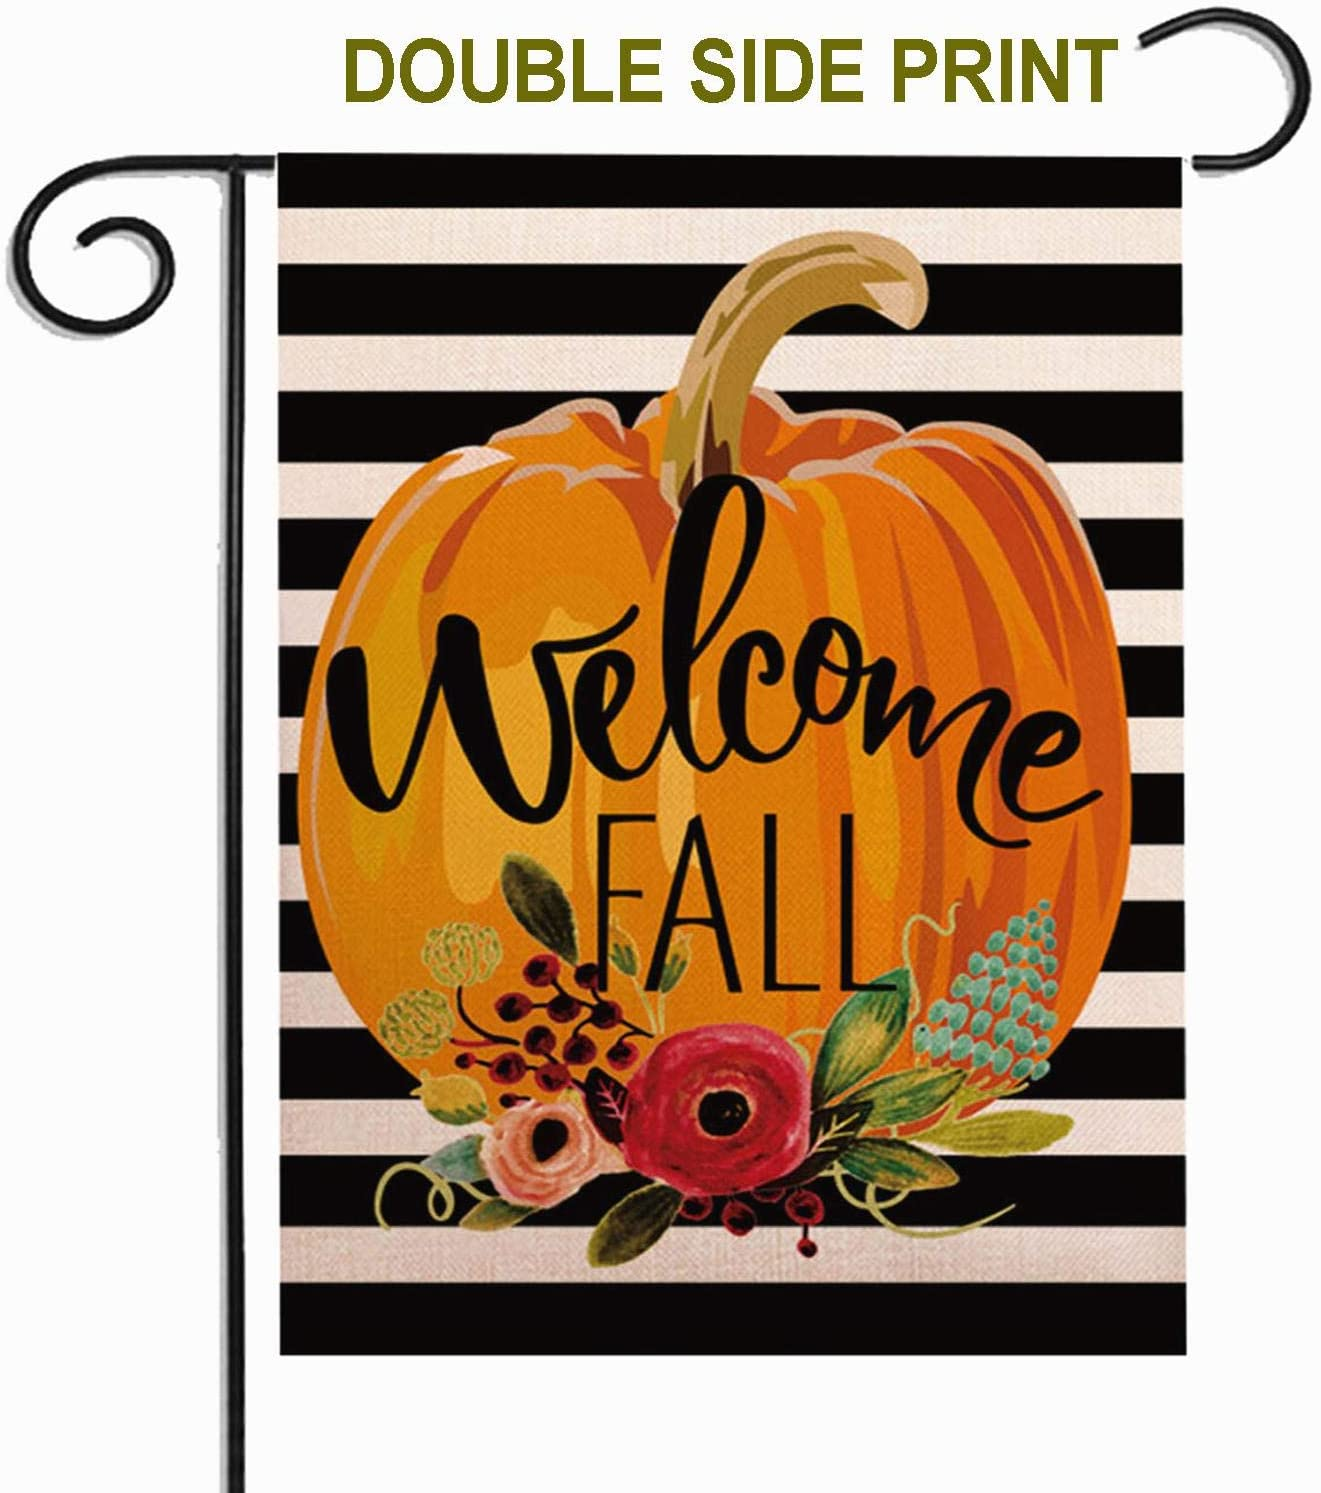 ZUEXT Welcome to Our Pumpkin Patch Fall Small Garden Flag Vertical Double Sided,Sewn Black and White Stripes Cotton Linen,Autumn Thanksgiving Harvest Farmhouse Outdoor Vintage Decor 12.5x18 Inch